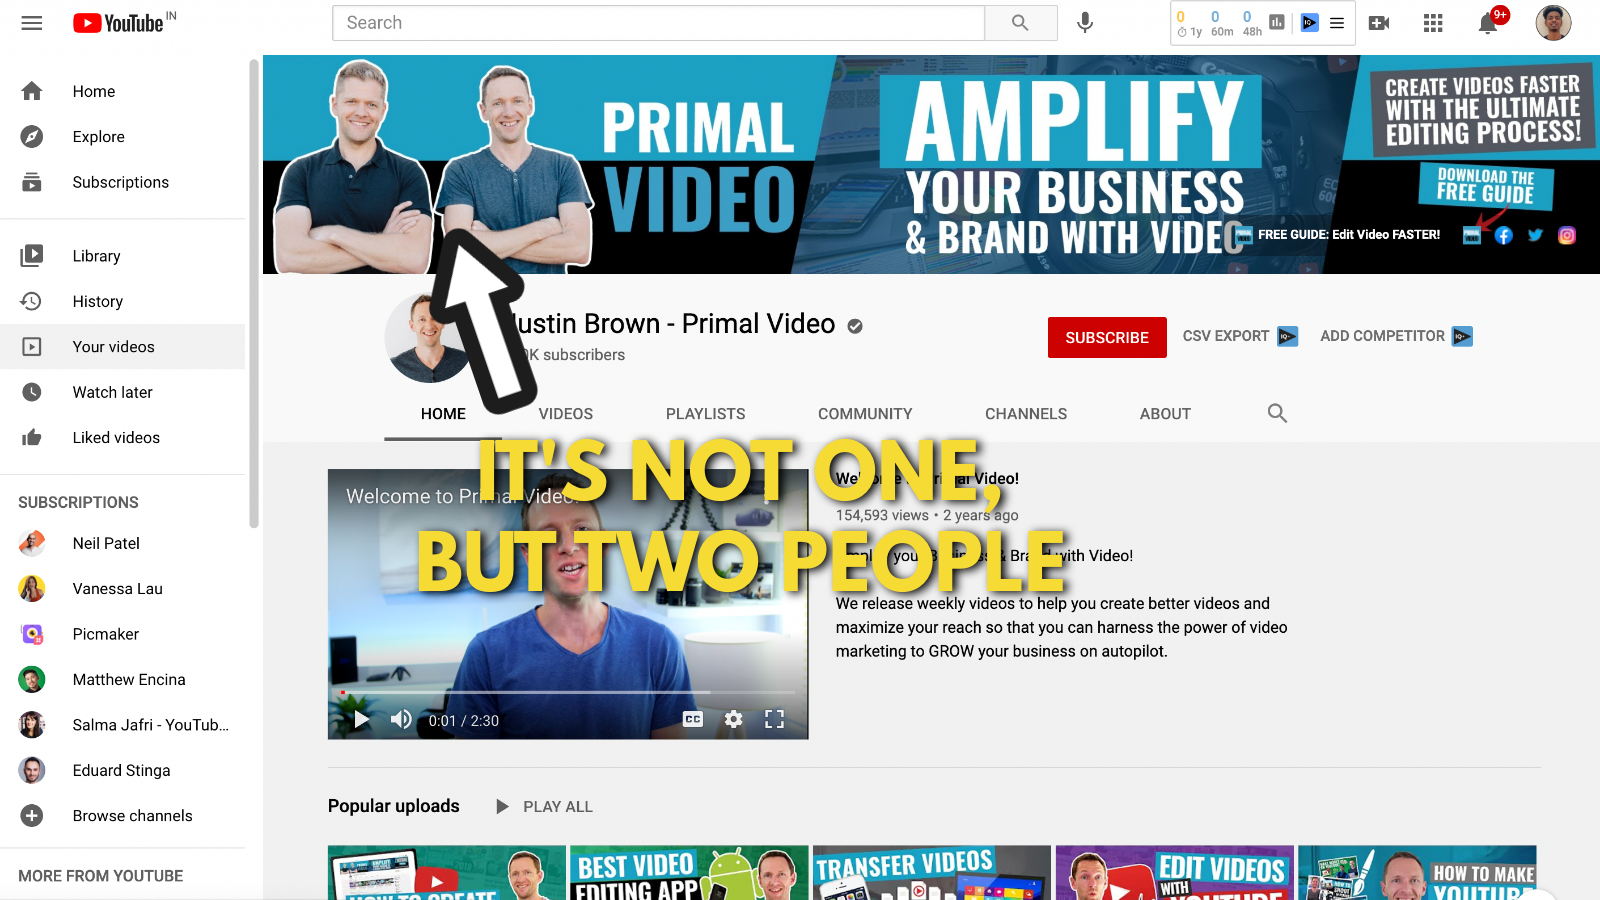 A screenshot of Primal video's YouTube channel 2